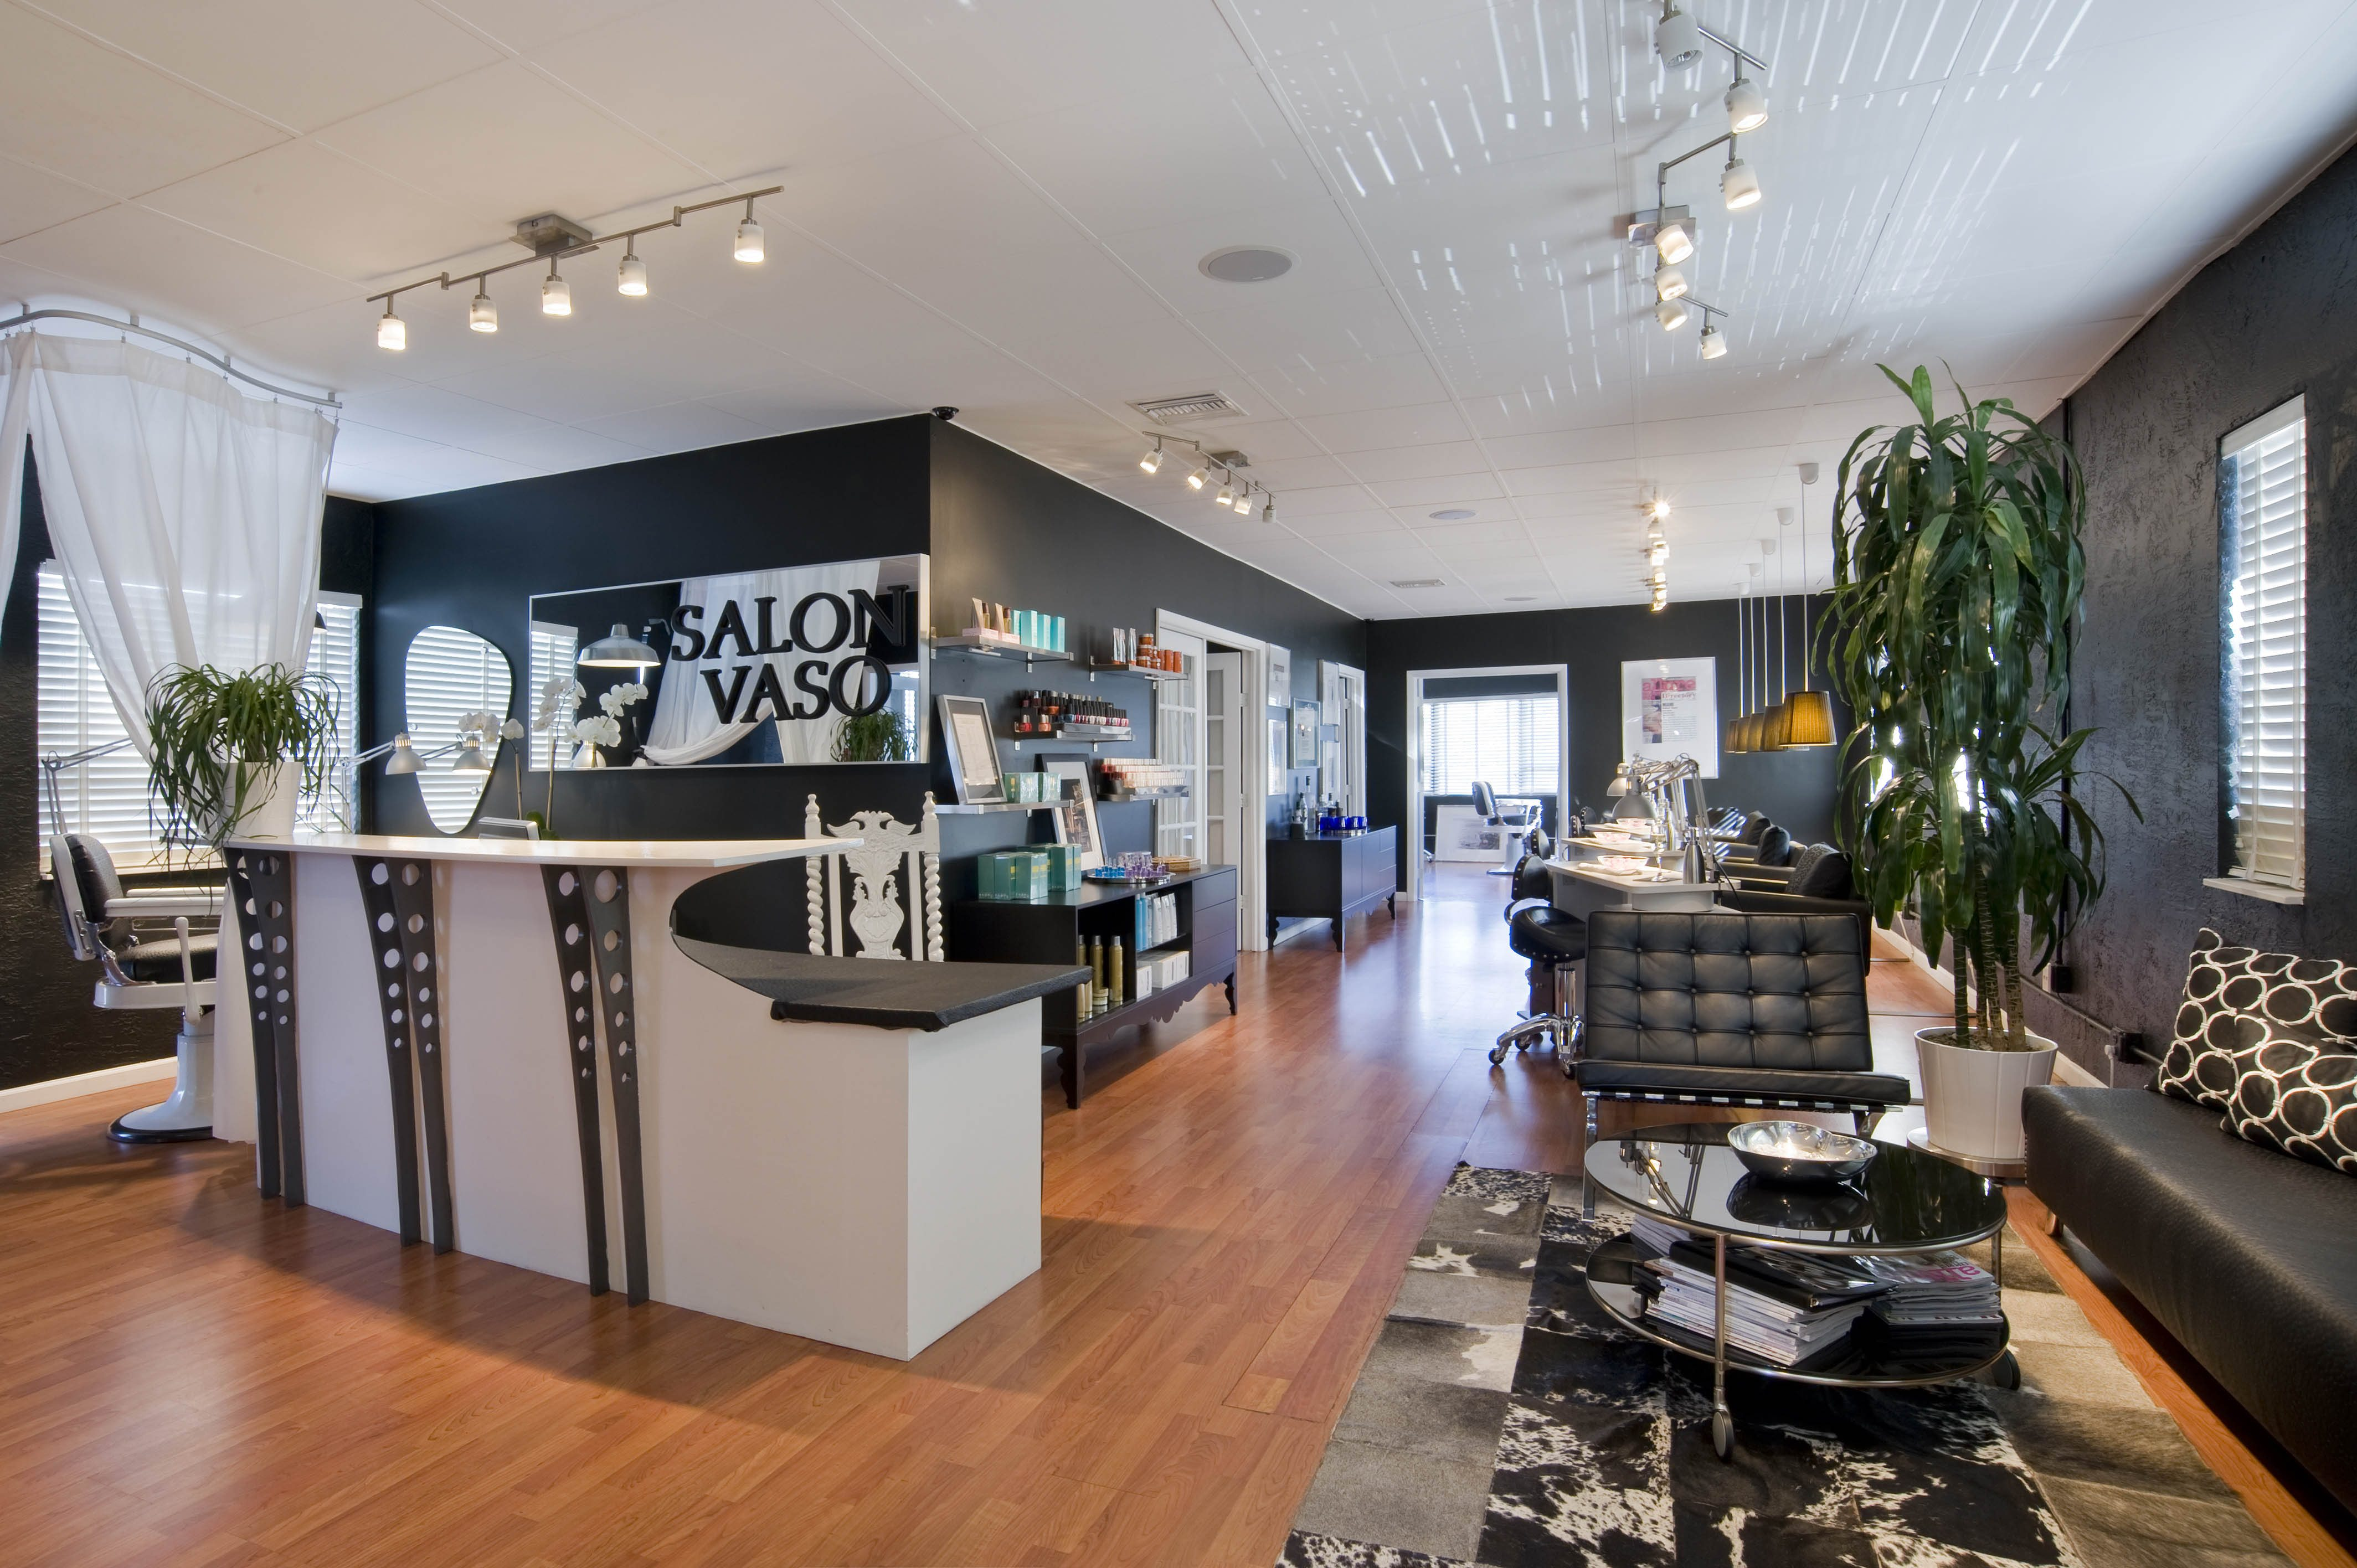 Salon vaso miami beach marketing pr case study for A cut above grooming salon